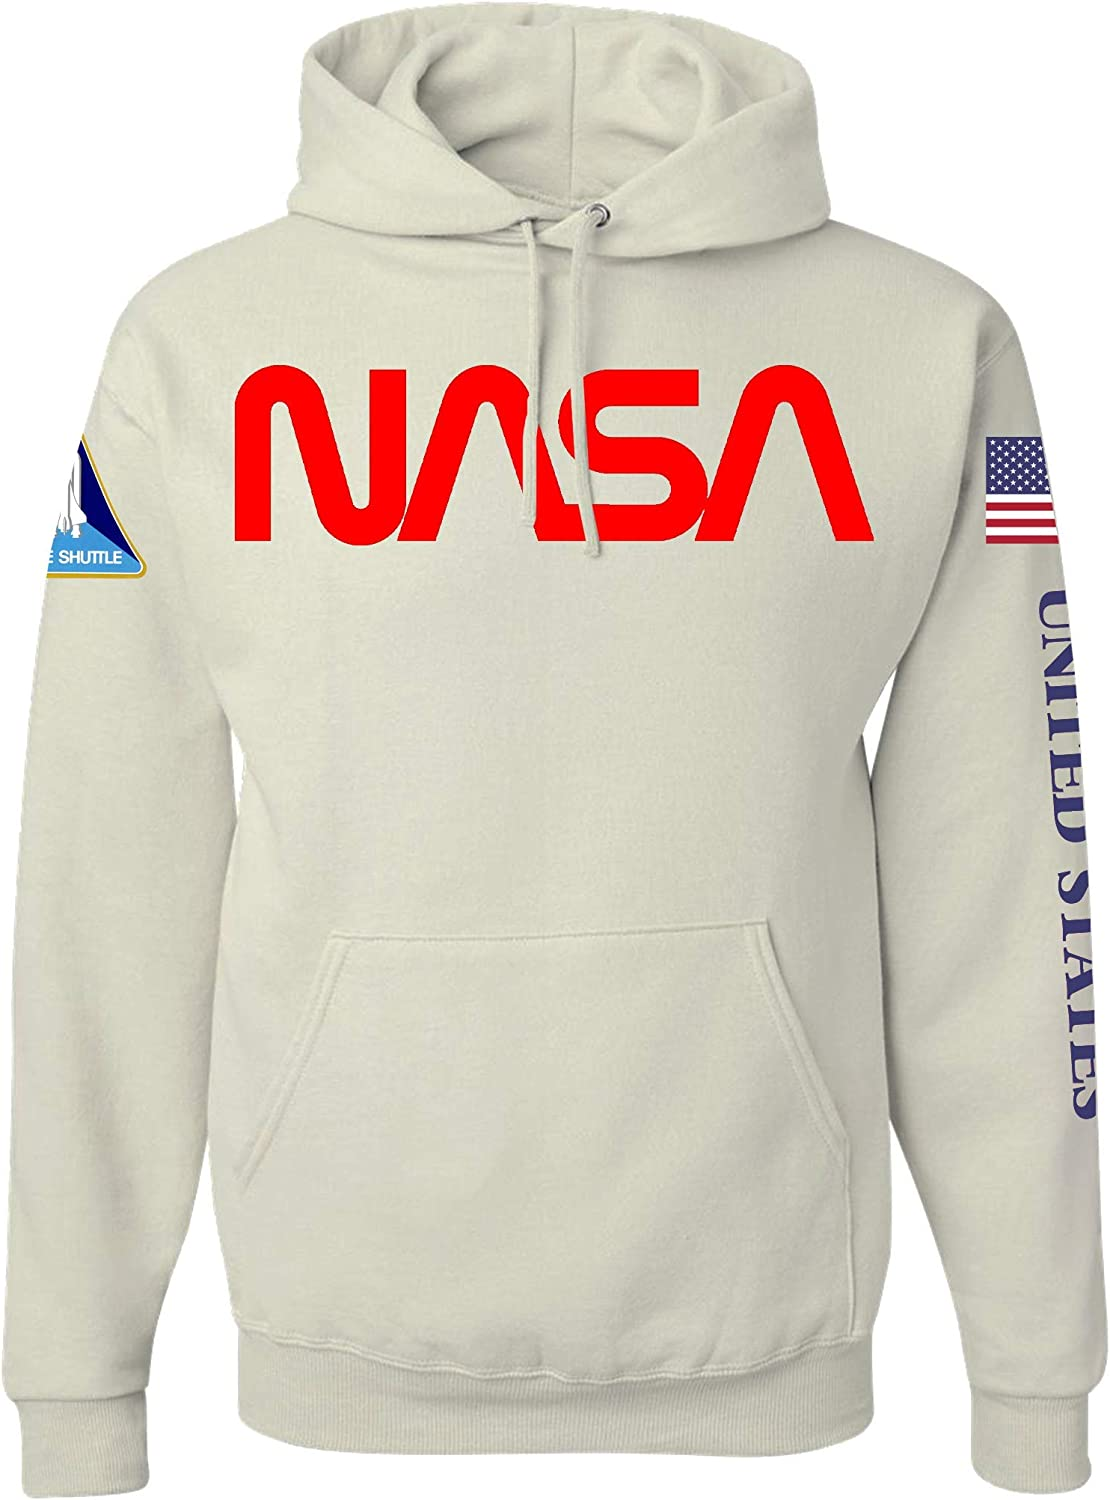 Omnitee Nasa Worm Logo Space Shuttle Heavy Duty White Pullover